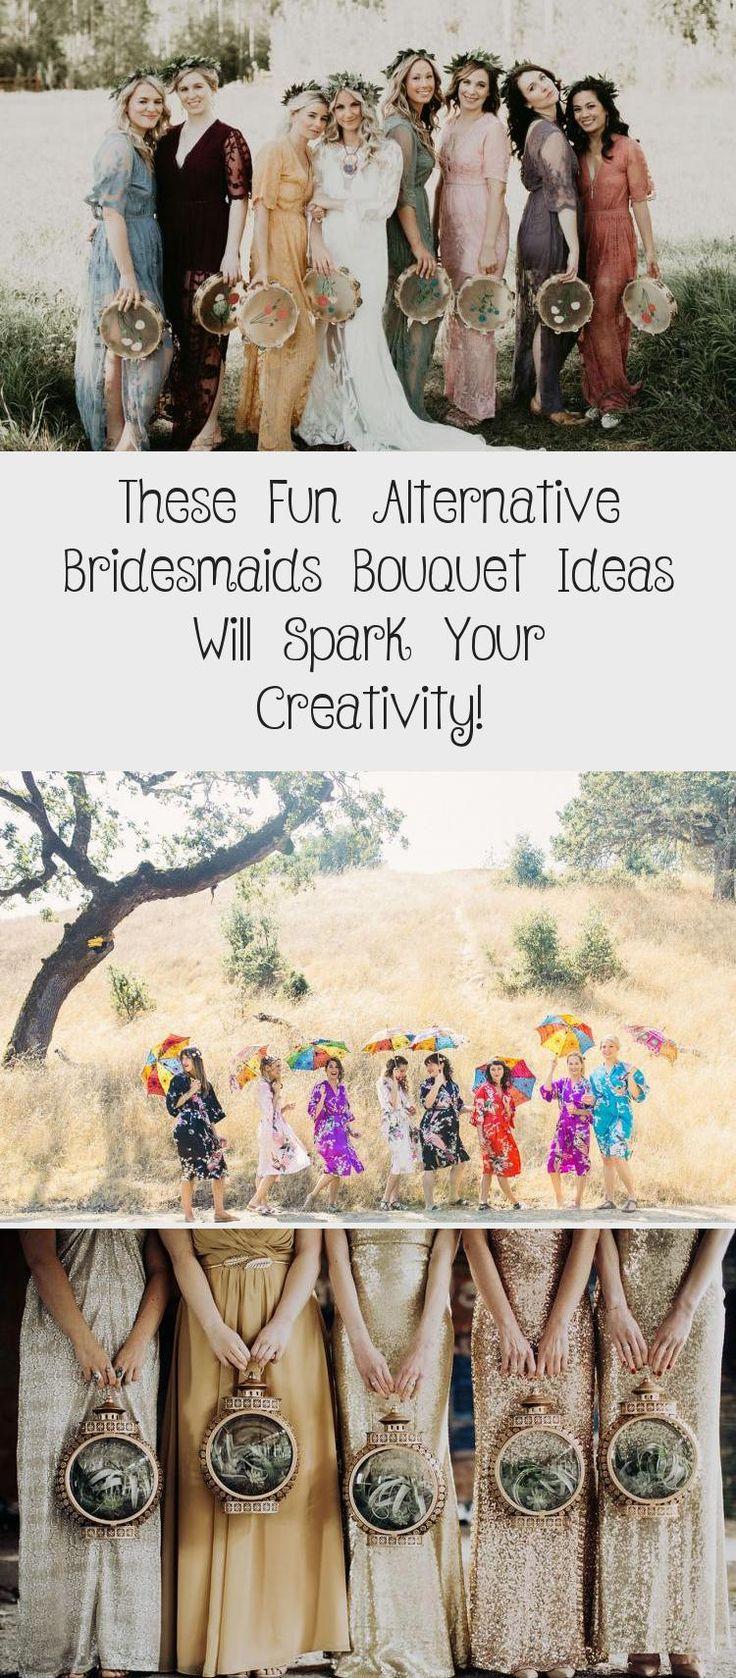 These Fun Alternative Bridesmaids Bouquet Ideas Will Spark Your Creativity! - Green Wedding Shoes #OffTheShoulderBridesmaidDresses #BridesmaidDressesSequin #MaroonBridesmaidDresses #BridesmaidDressesPlusSize #BridesmaidDressesCoral